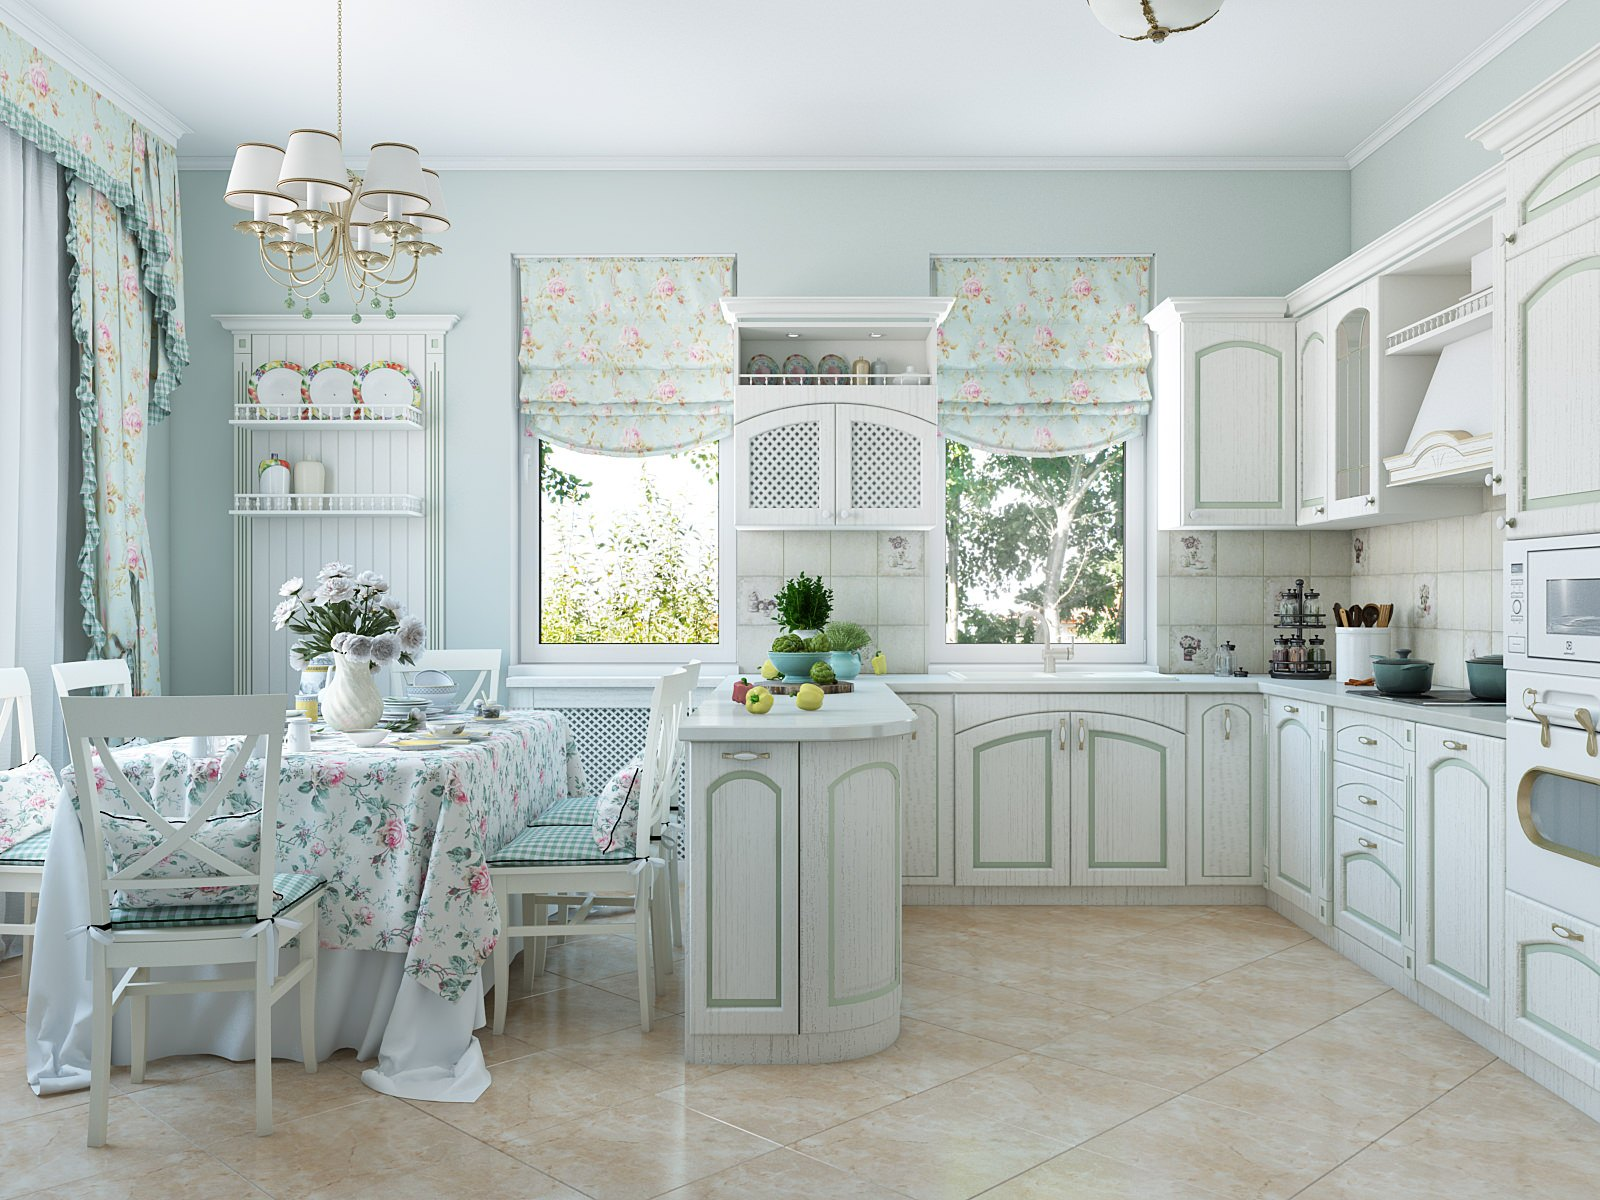 Provence Style Kitchen Interior Design for Cozy Life with Taste of Classics. Pale blue colored furniture with white dining zone